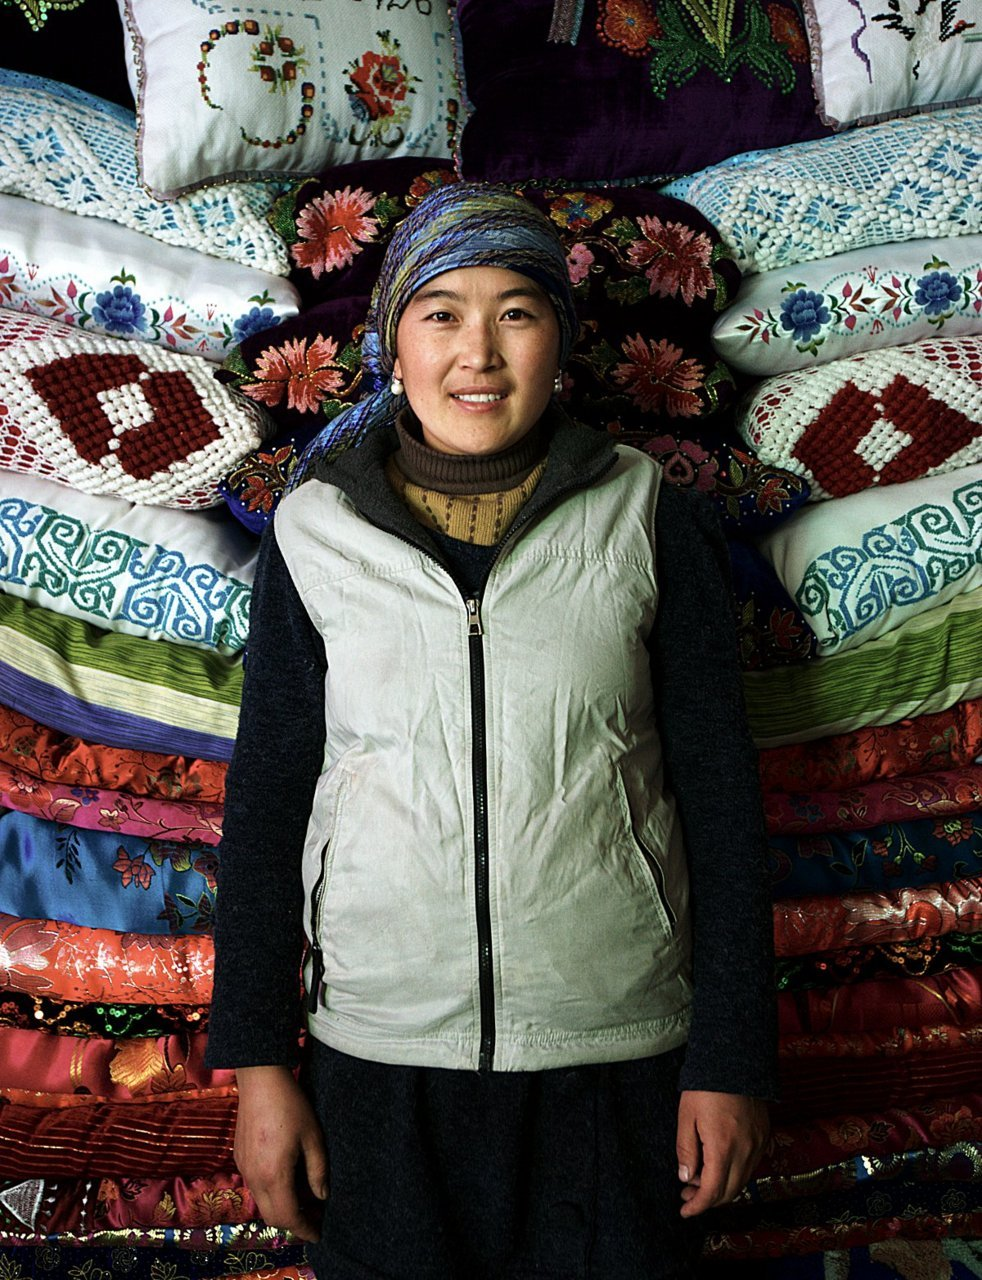 23 year old Kazakh woman with wedding gifts. Near Balicun, East Turkestan (Xinjiang, China) December 1 2011